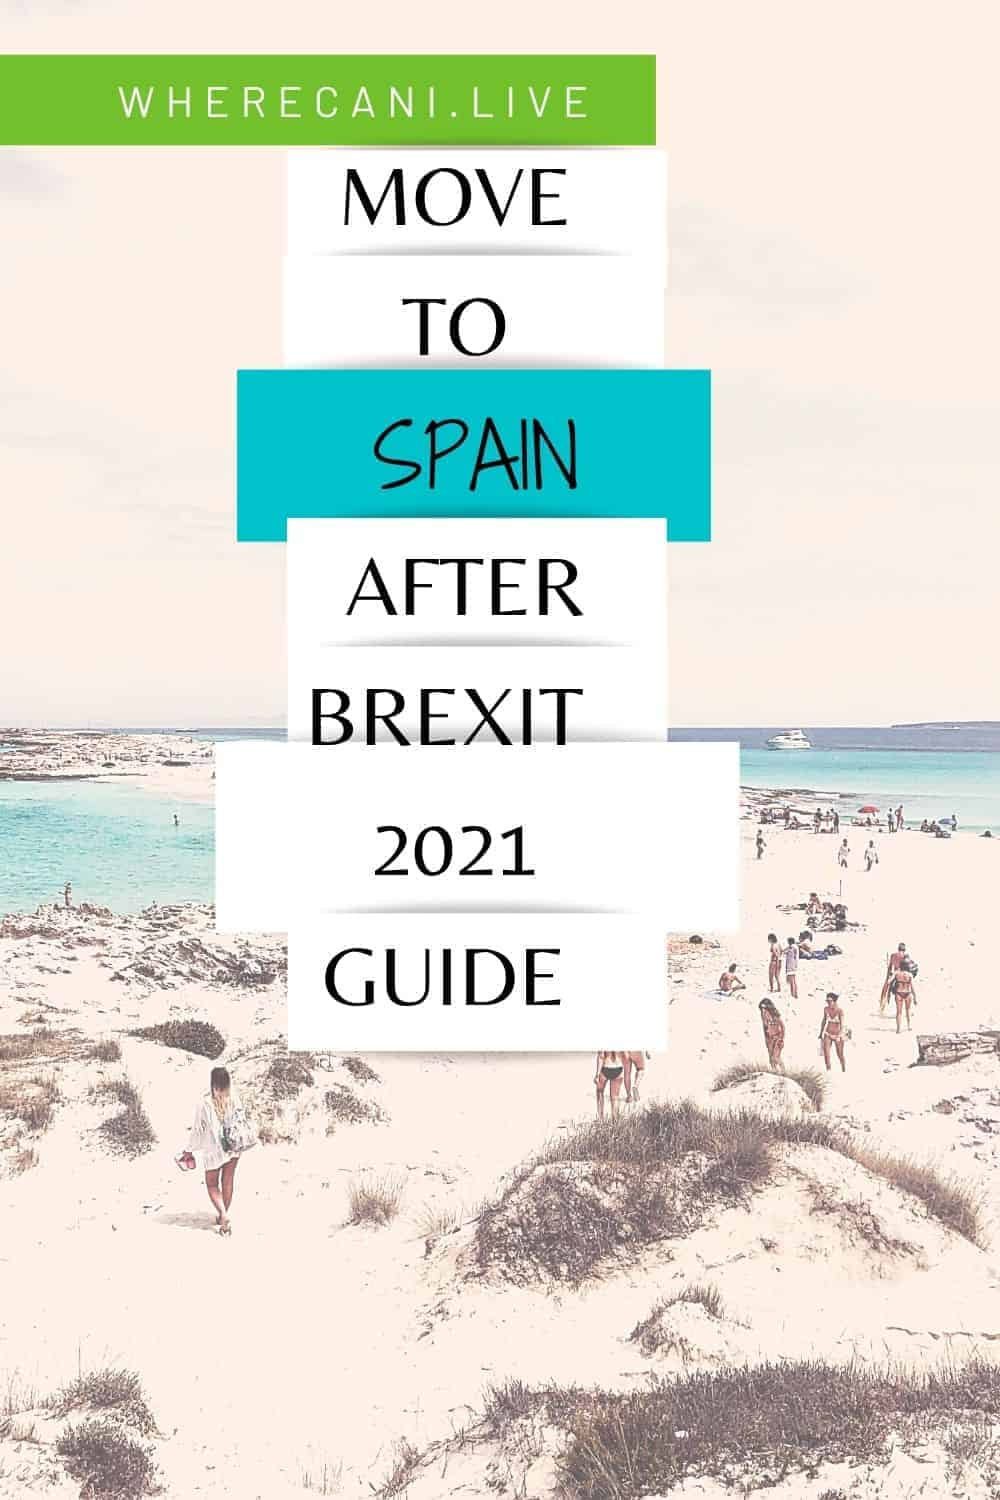 Are you a British citizen and want to move to Spain?  Here is how you do it now that Brexit is a reality. #brexit #Spain #moveabroad #expat via @wherecanilive